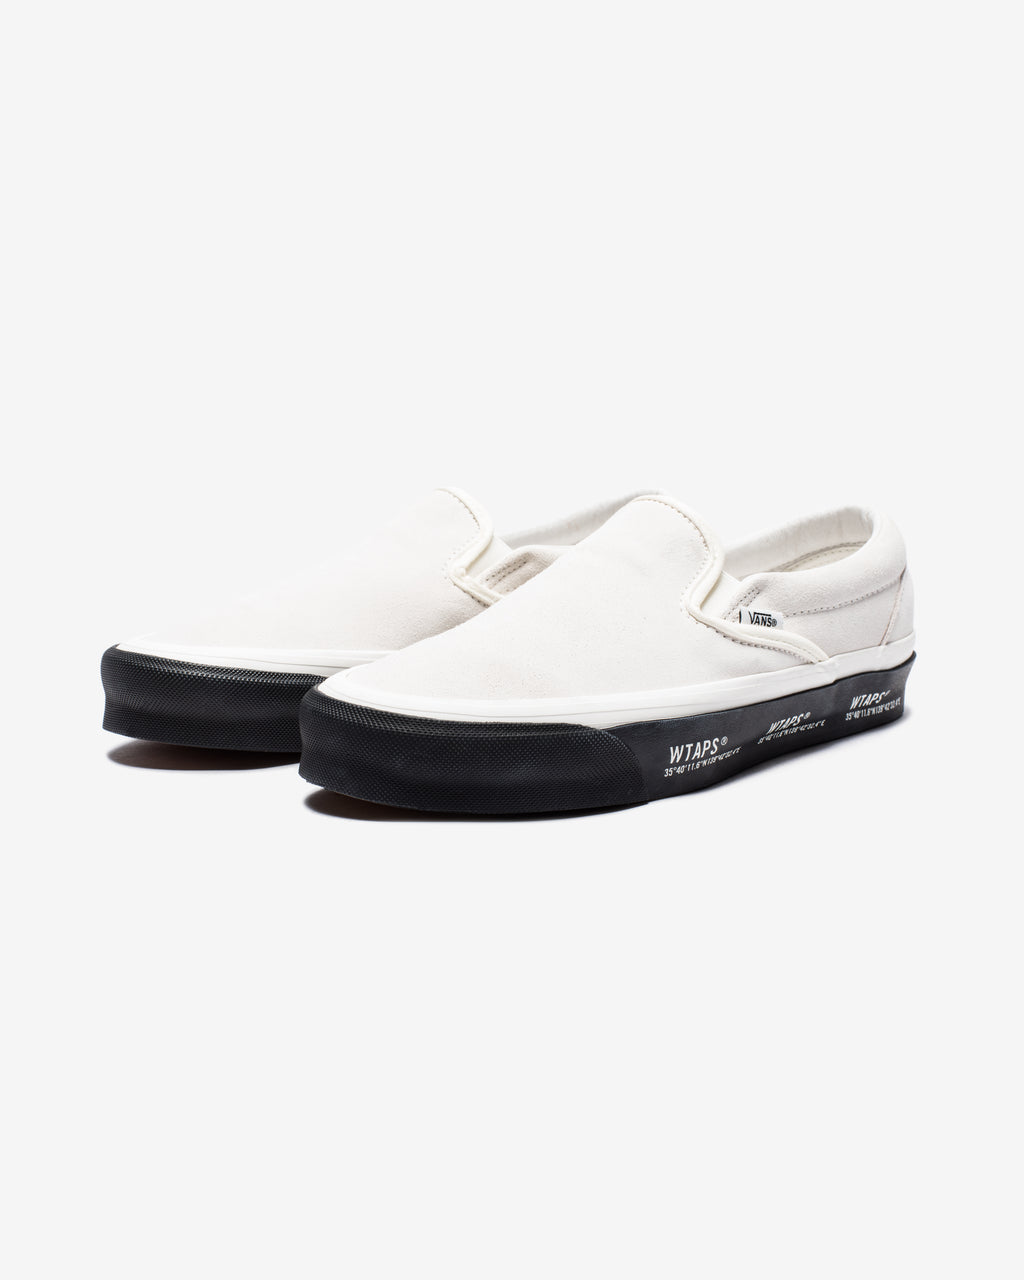 VANS X WTAPS OG CLASSIC SLIP-ON LX - GPS/ WHITE/ BLACK